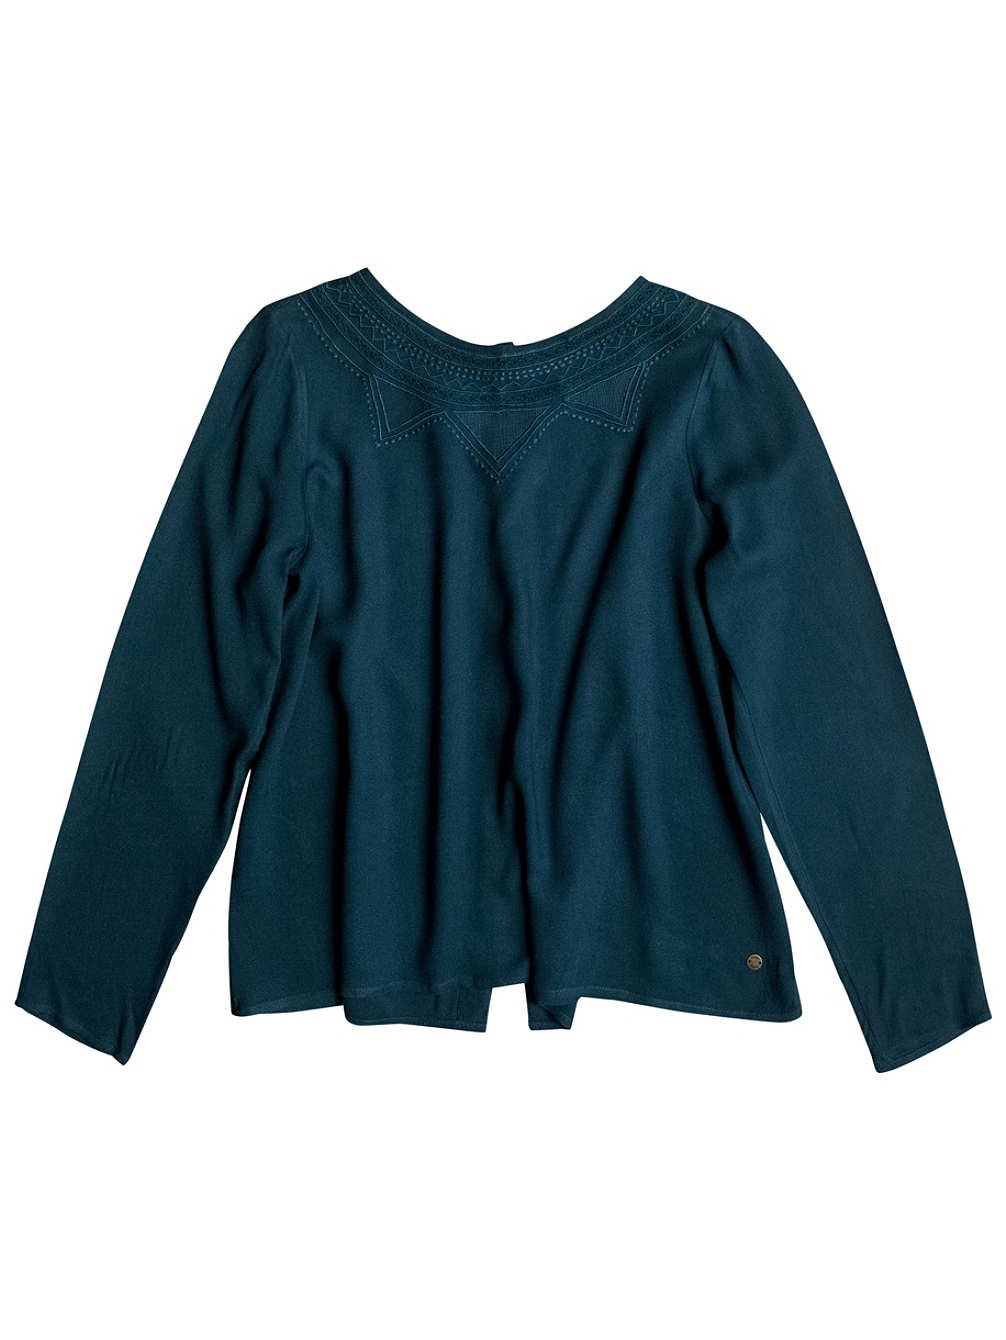 TALLA L. Roxy Mujeres Come Let Go Manga Larga Top, Mujer, Come Let Go, Reflecting Pond, L